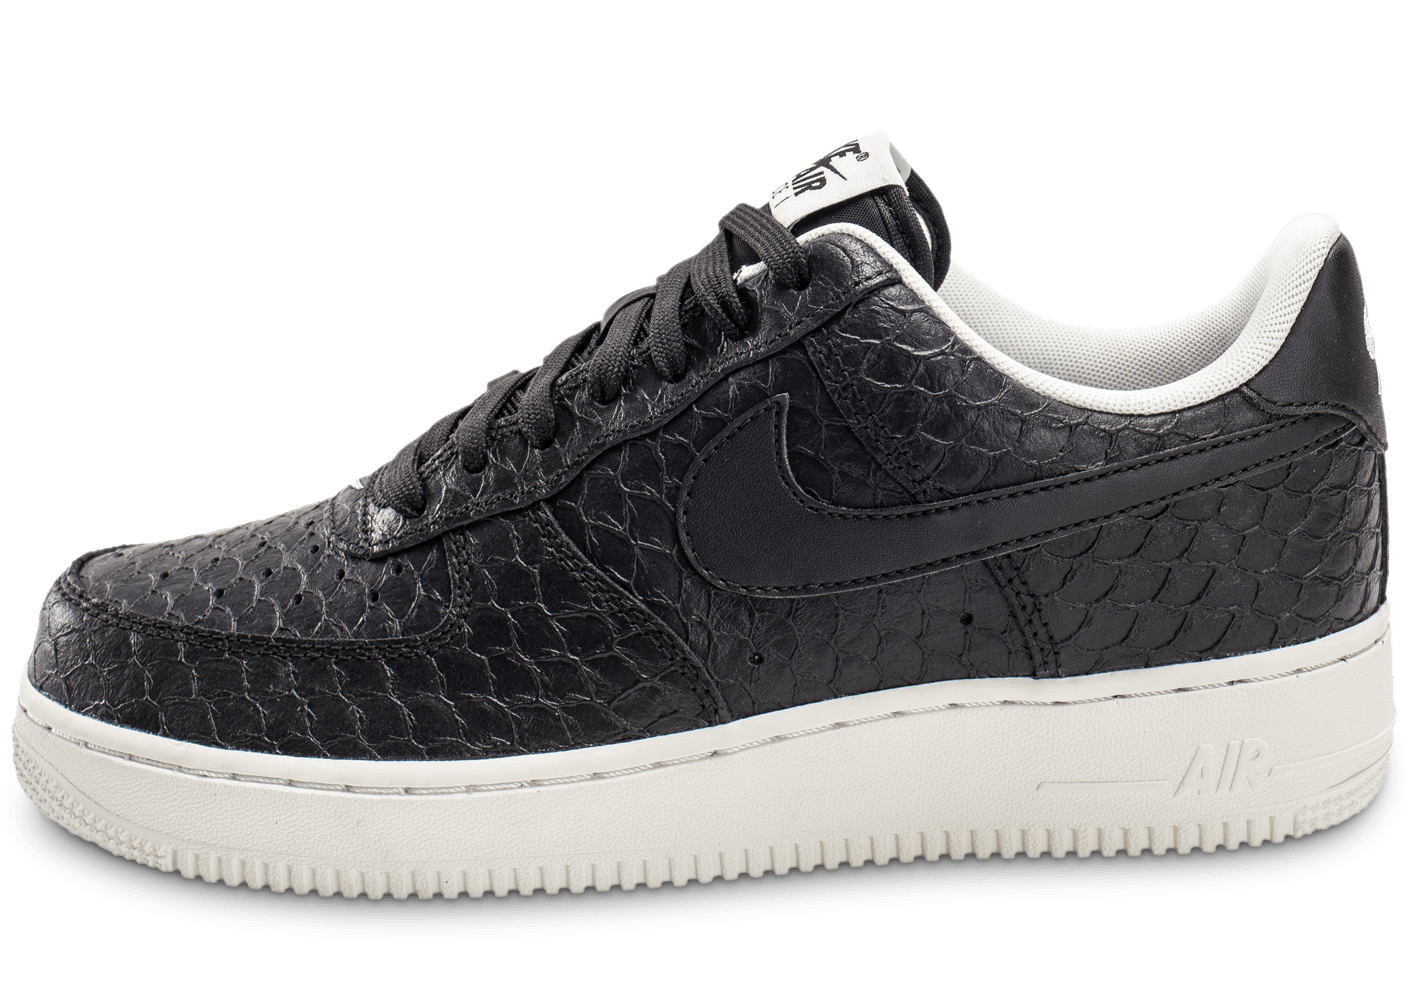 new product 62828 45793 Nike Air Force 1 07 LV8 Snake noire - Chaussures Baskets homme - Chausport